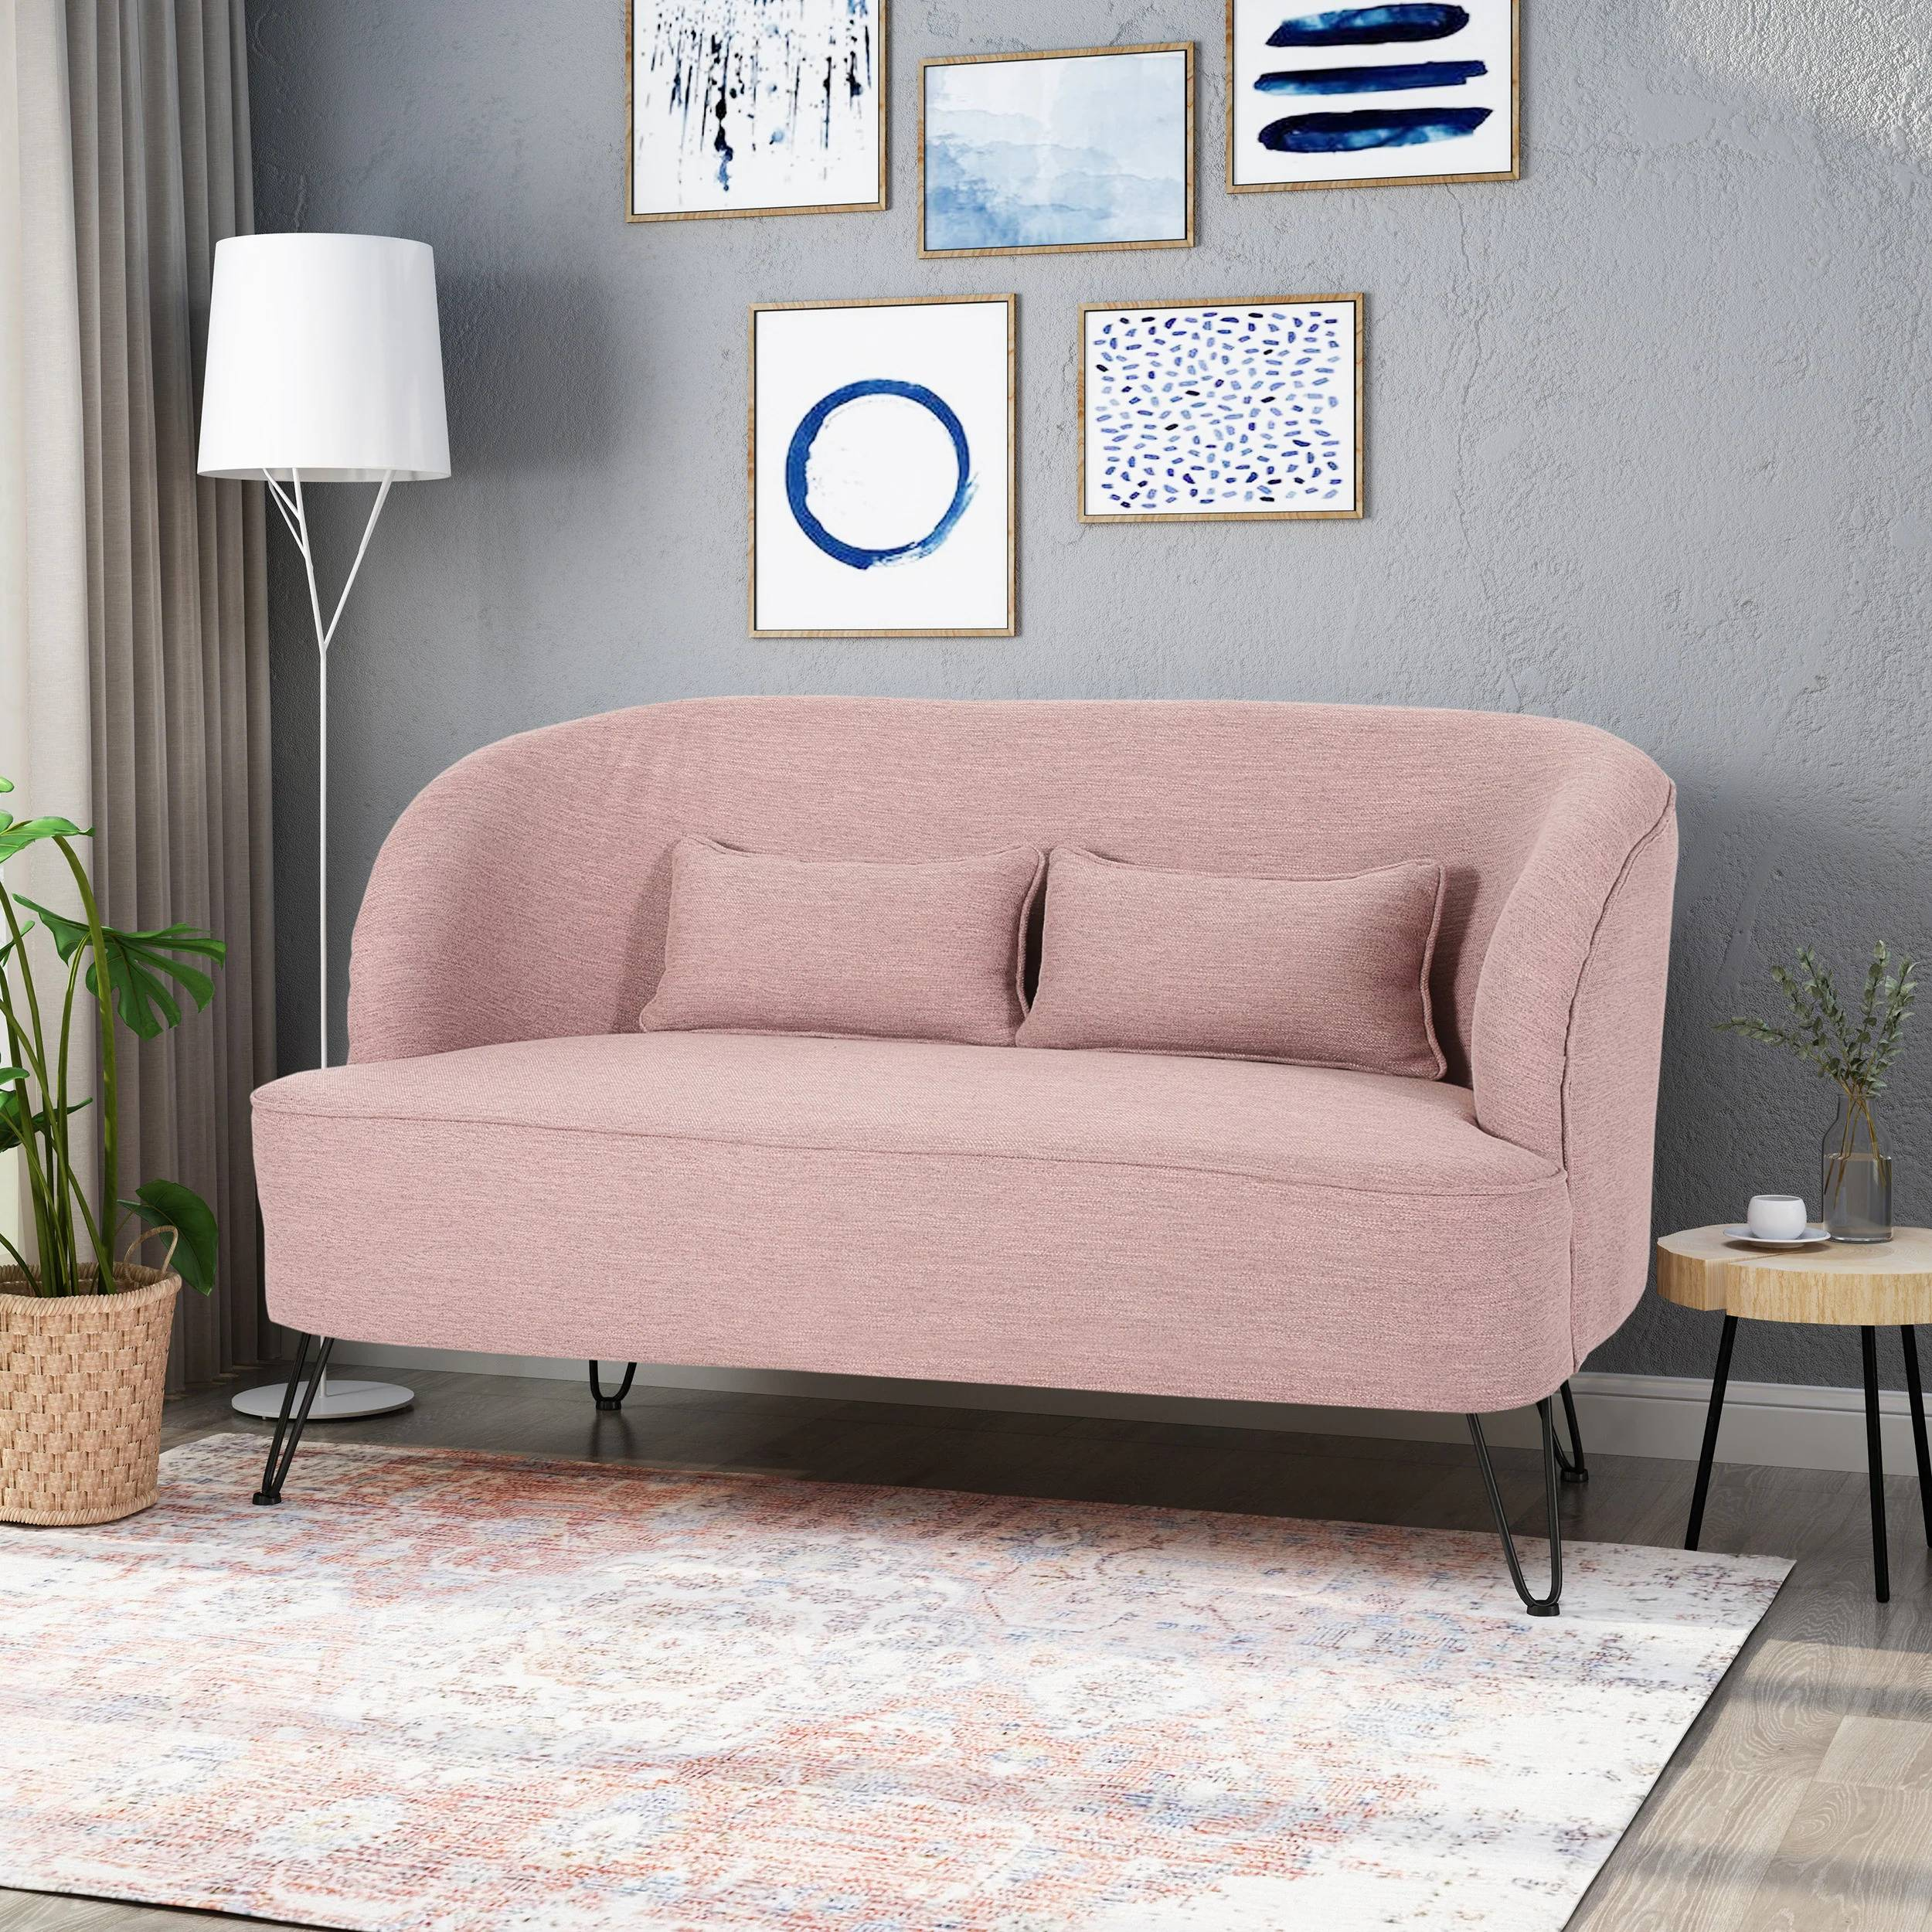 Pink sofa beside tall white lampshade